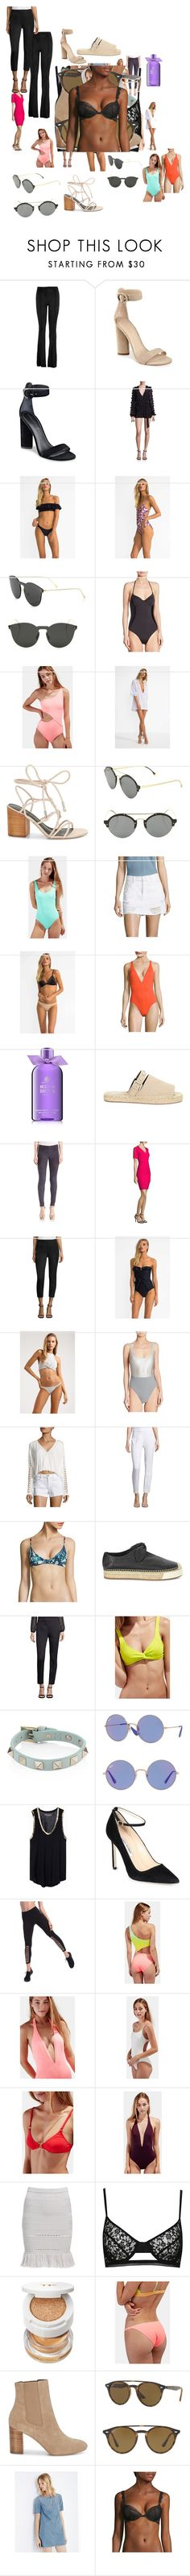 """""""Untitled #1982"""" by bucketlistdiary on Polyvore featuring Hale Bob, Kendall + Kylie, Alice McCall, Suboo, Illesteva, Kore, Solid & Striped, Rebecca Minkoff, J Brand and Proenza Schouler"""